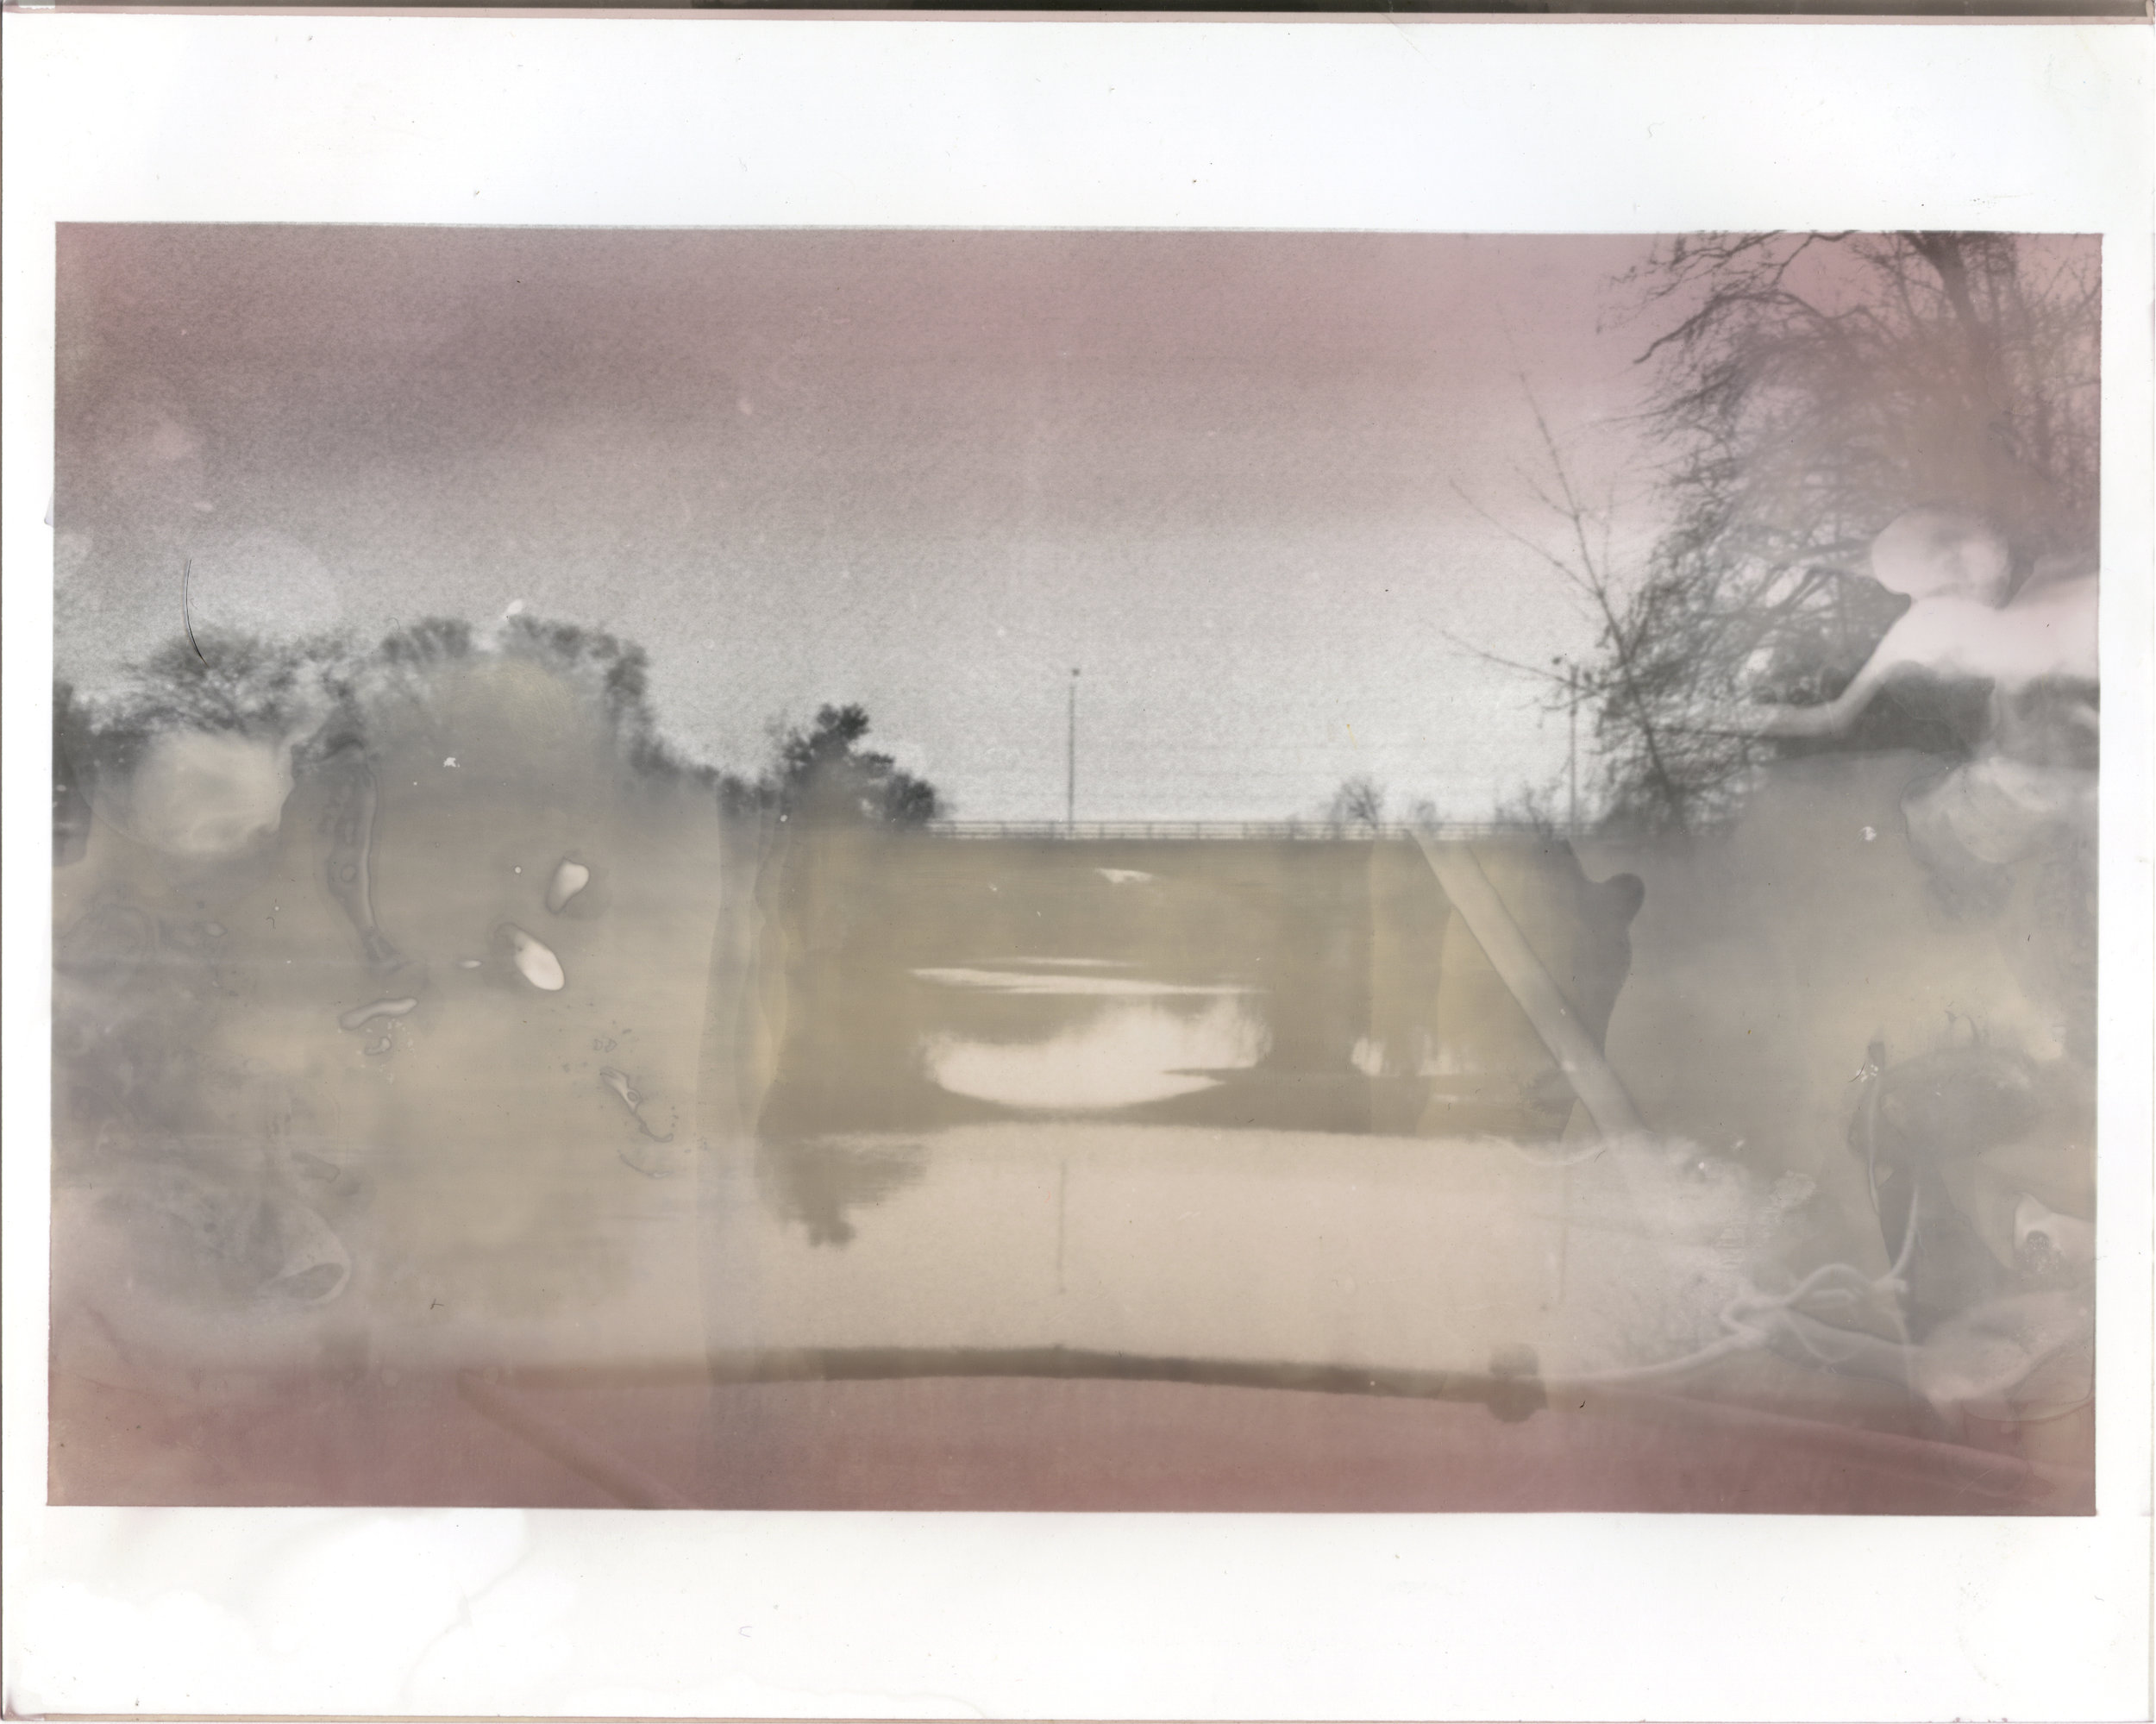 Bridge Over Flint 8  2016  silver gelatin print developed with Flint, Michigan tap water,  vitamin C, bleach, and wine  8 x 10 inches